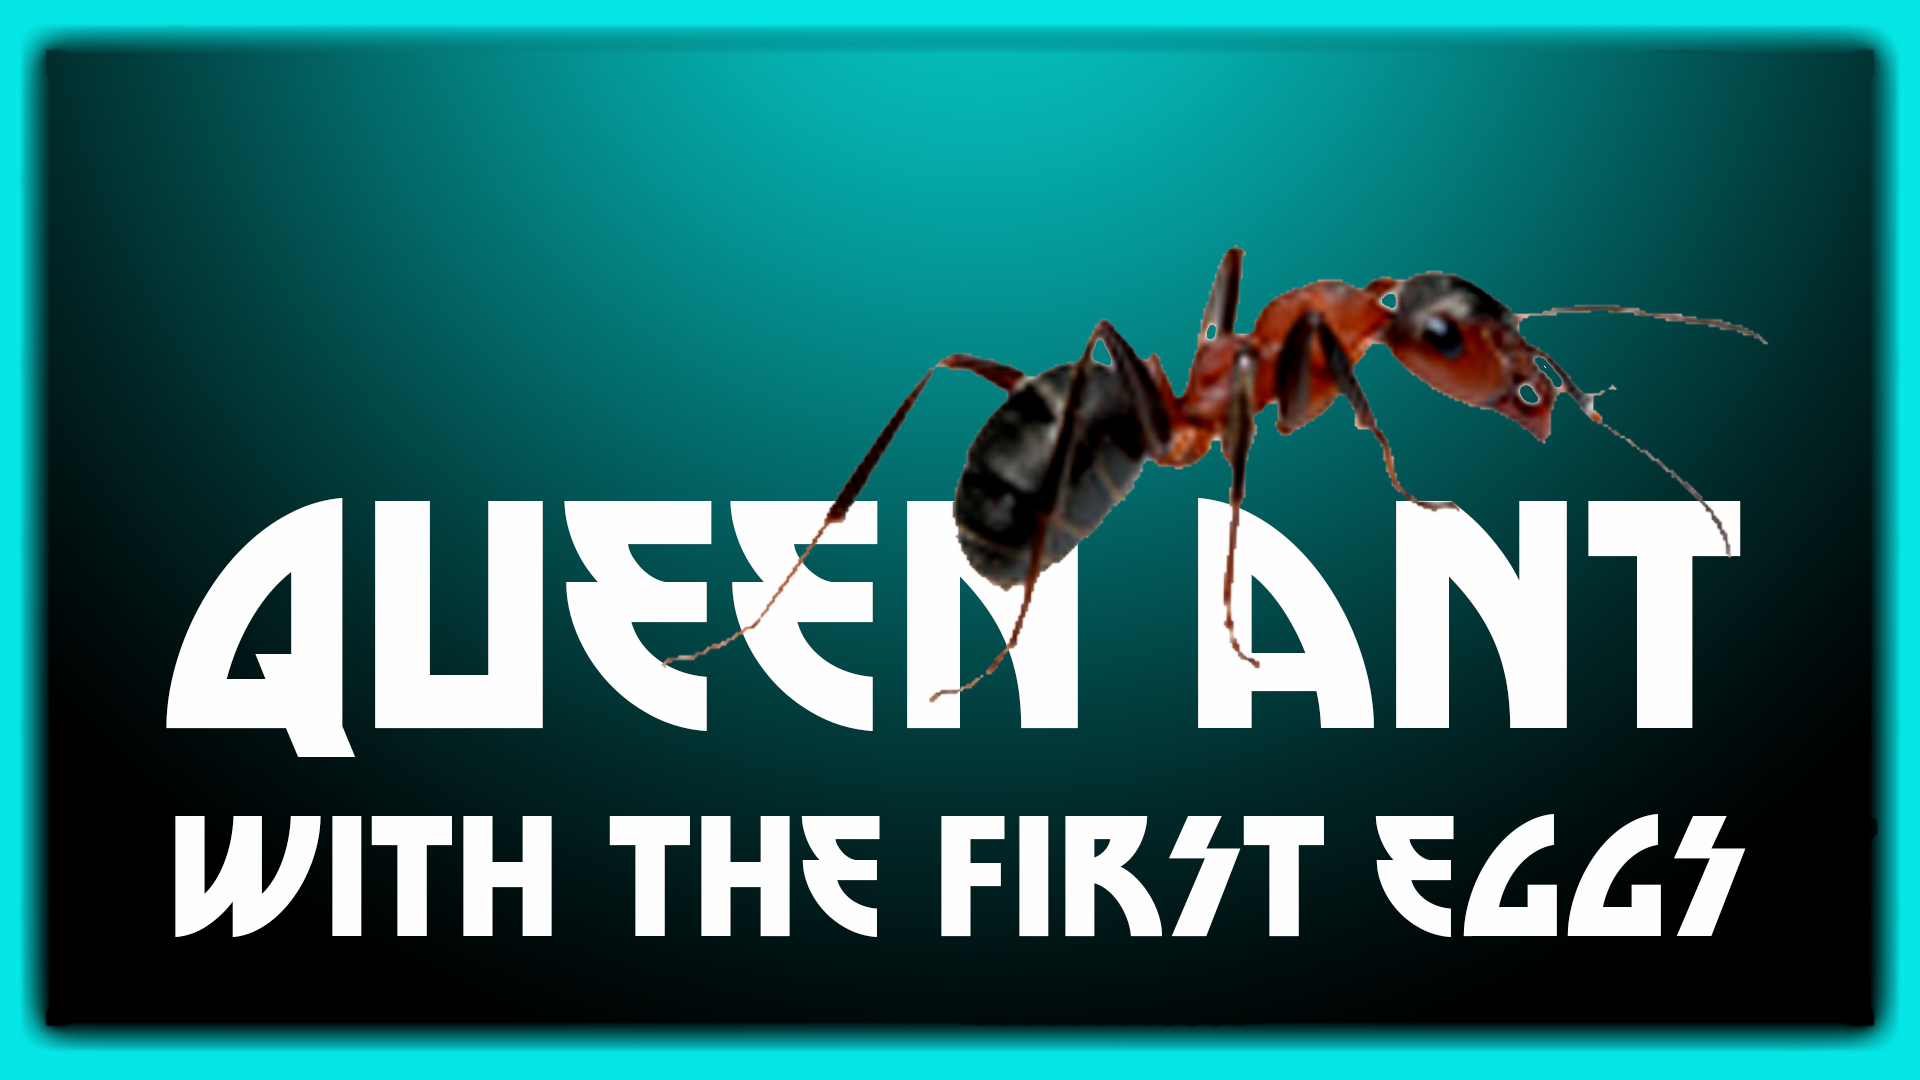 queen ant first eggs